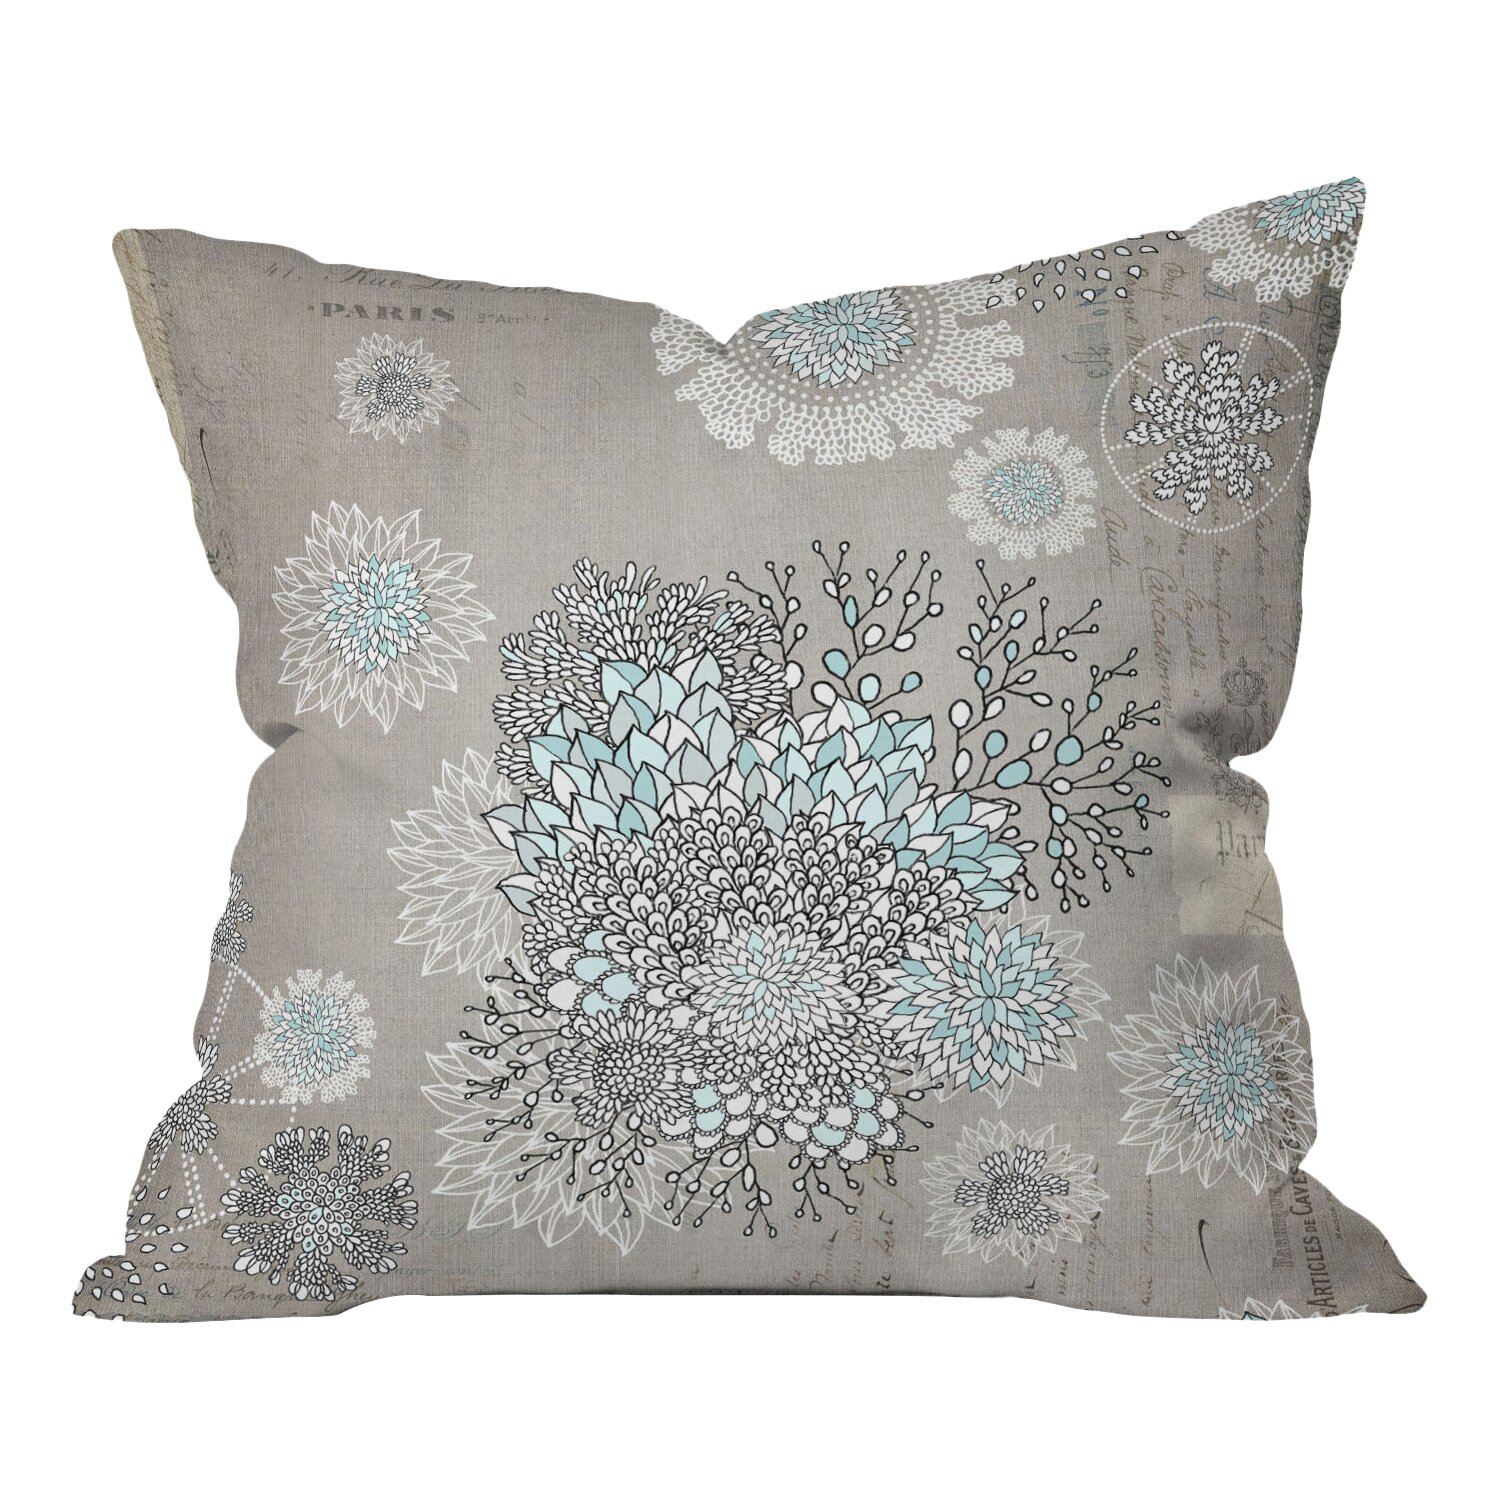 Throw Pillow In French : DENY Designs French Throw Pillow & Reviews Wayfair.ca